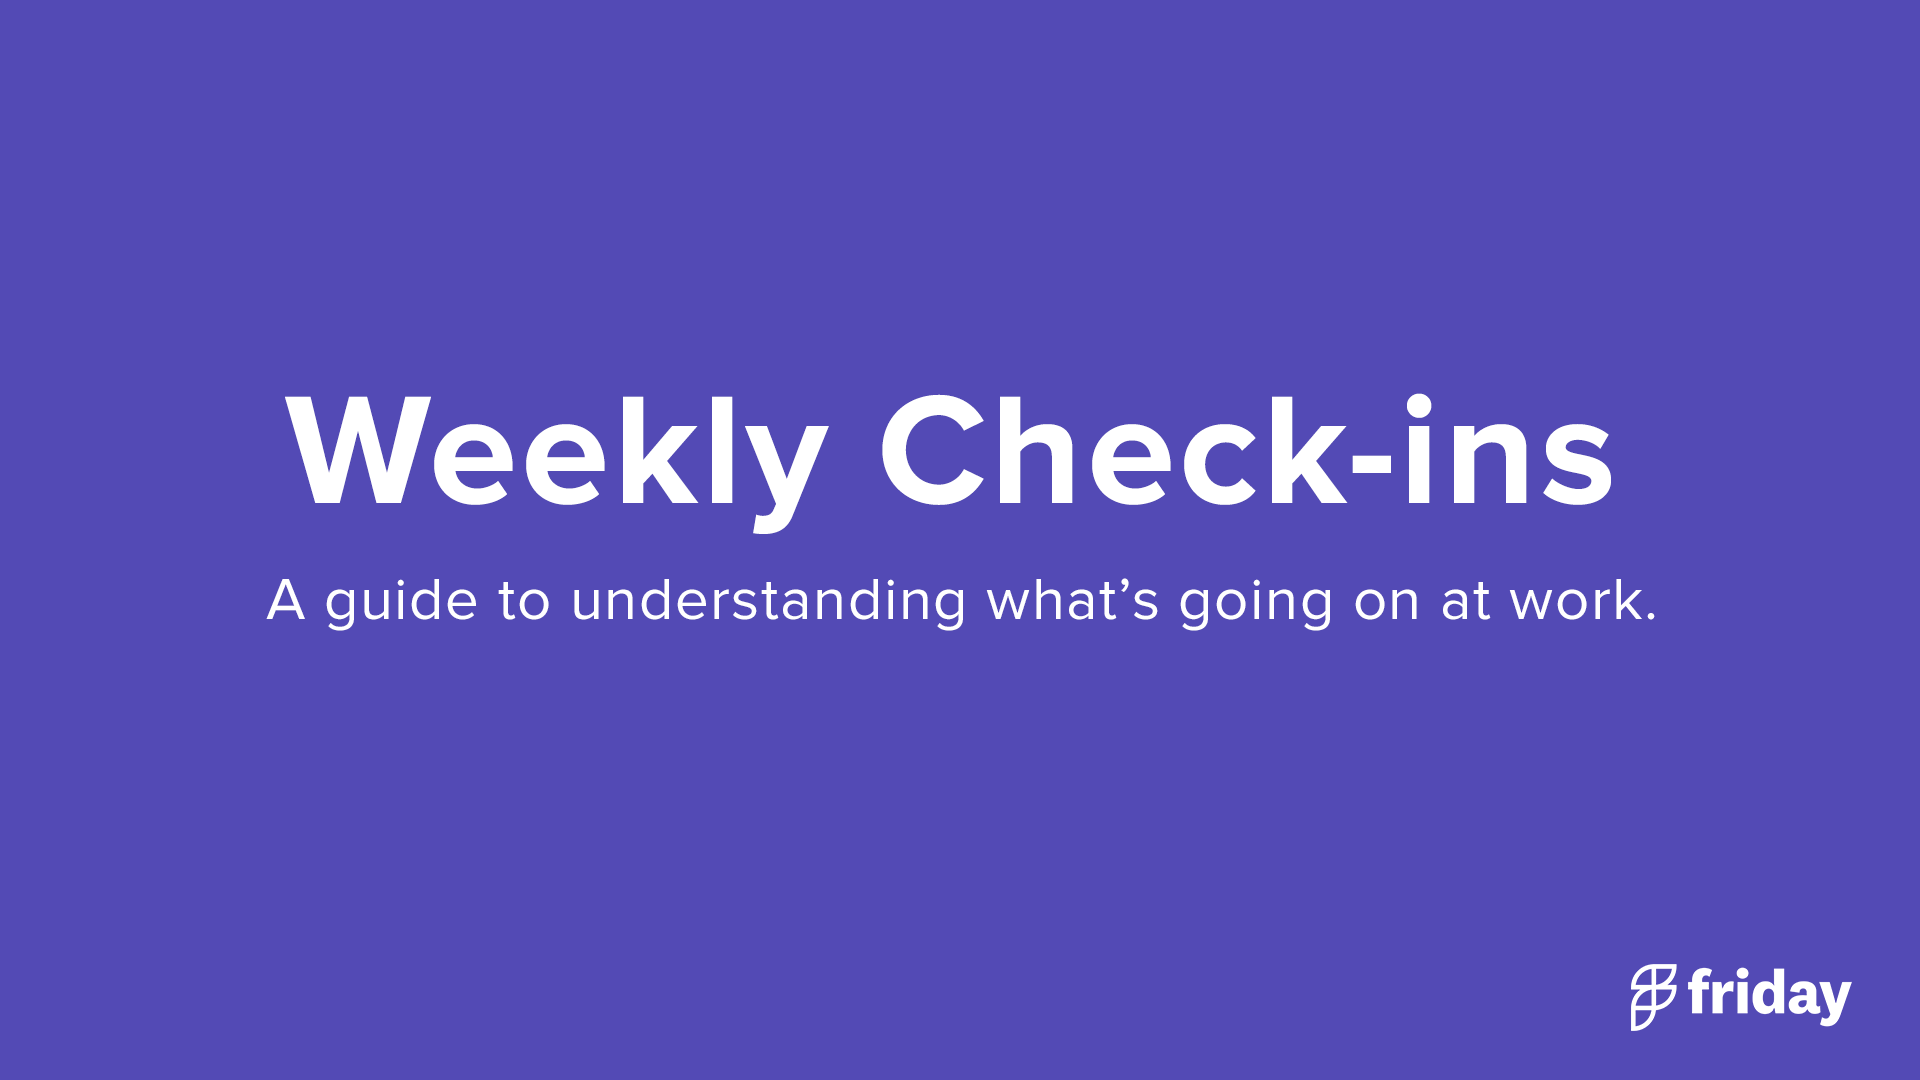 Weekly Check-Ins